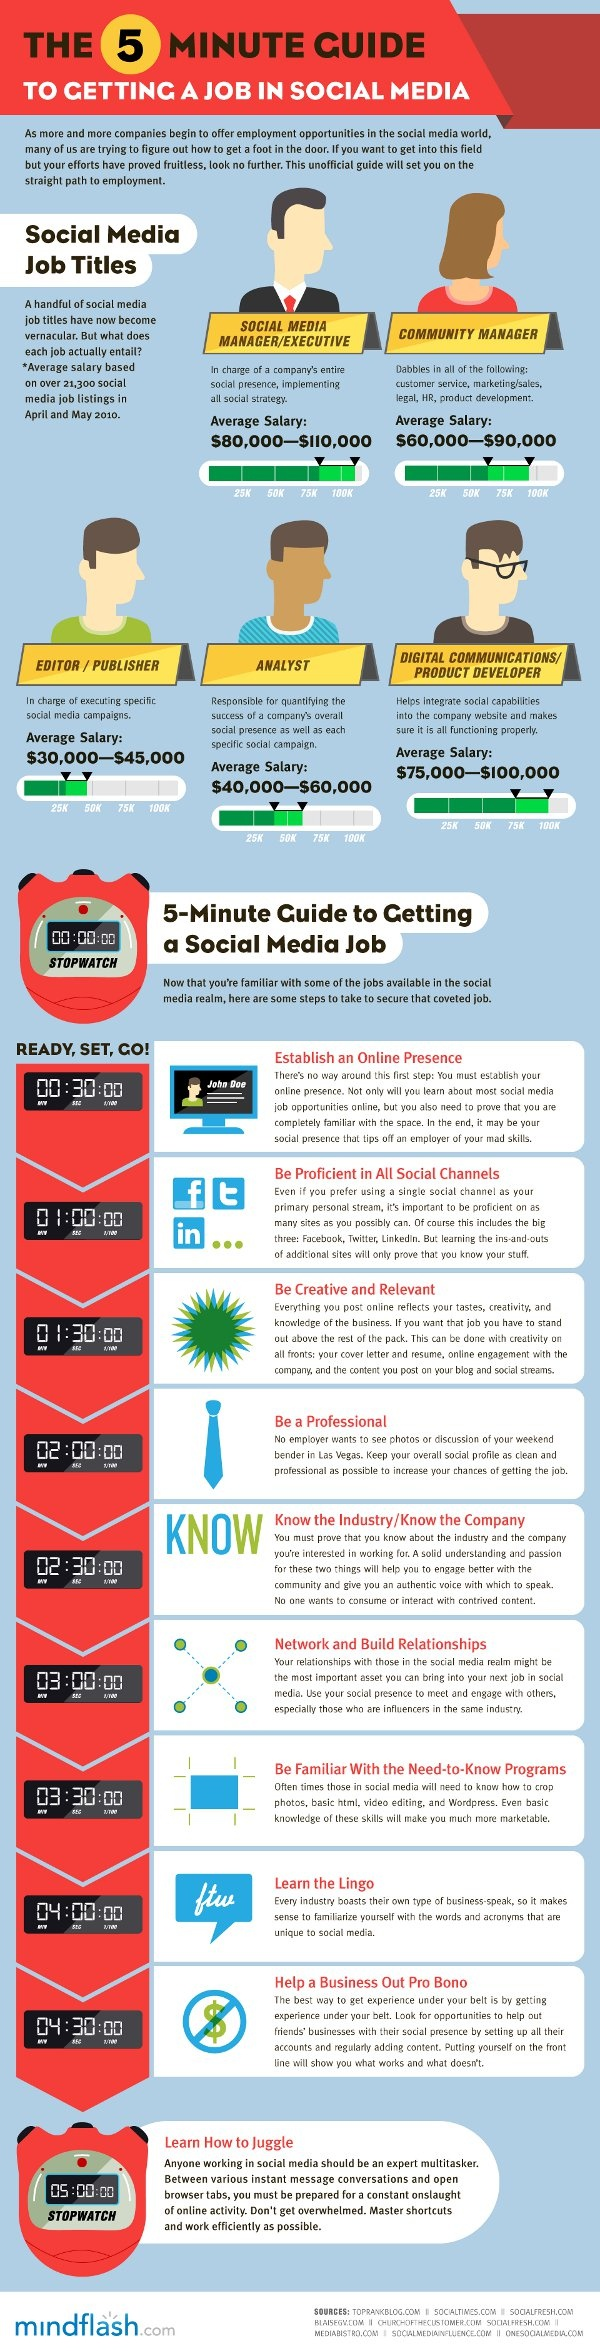 How To Get A Job In Social Media [Infographic]